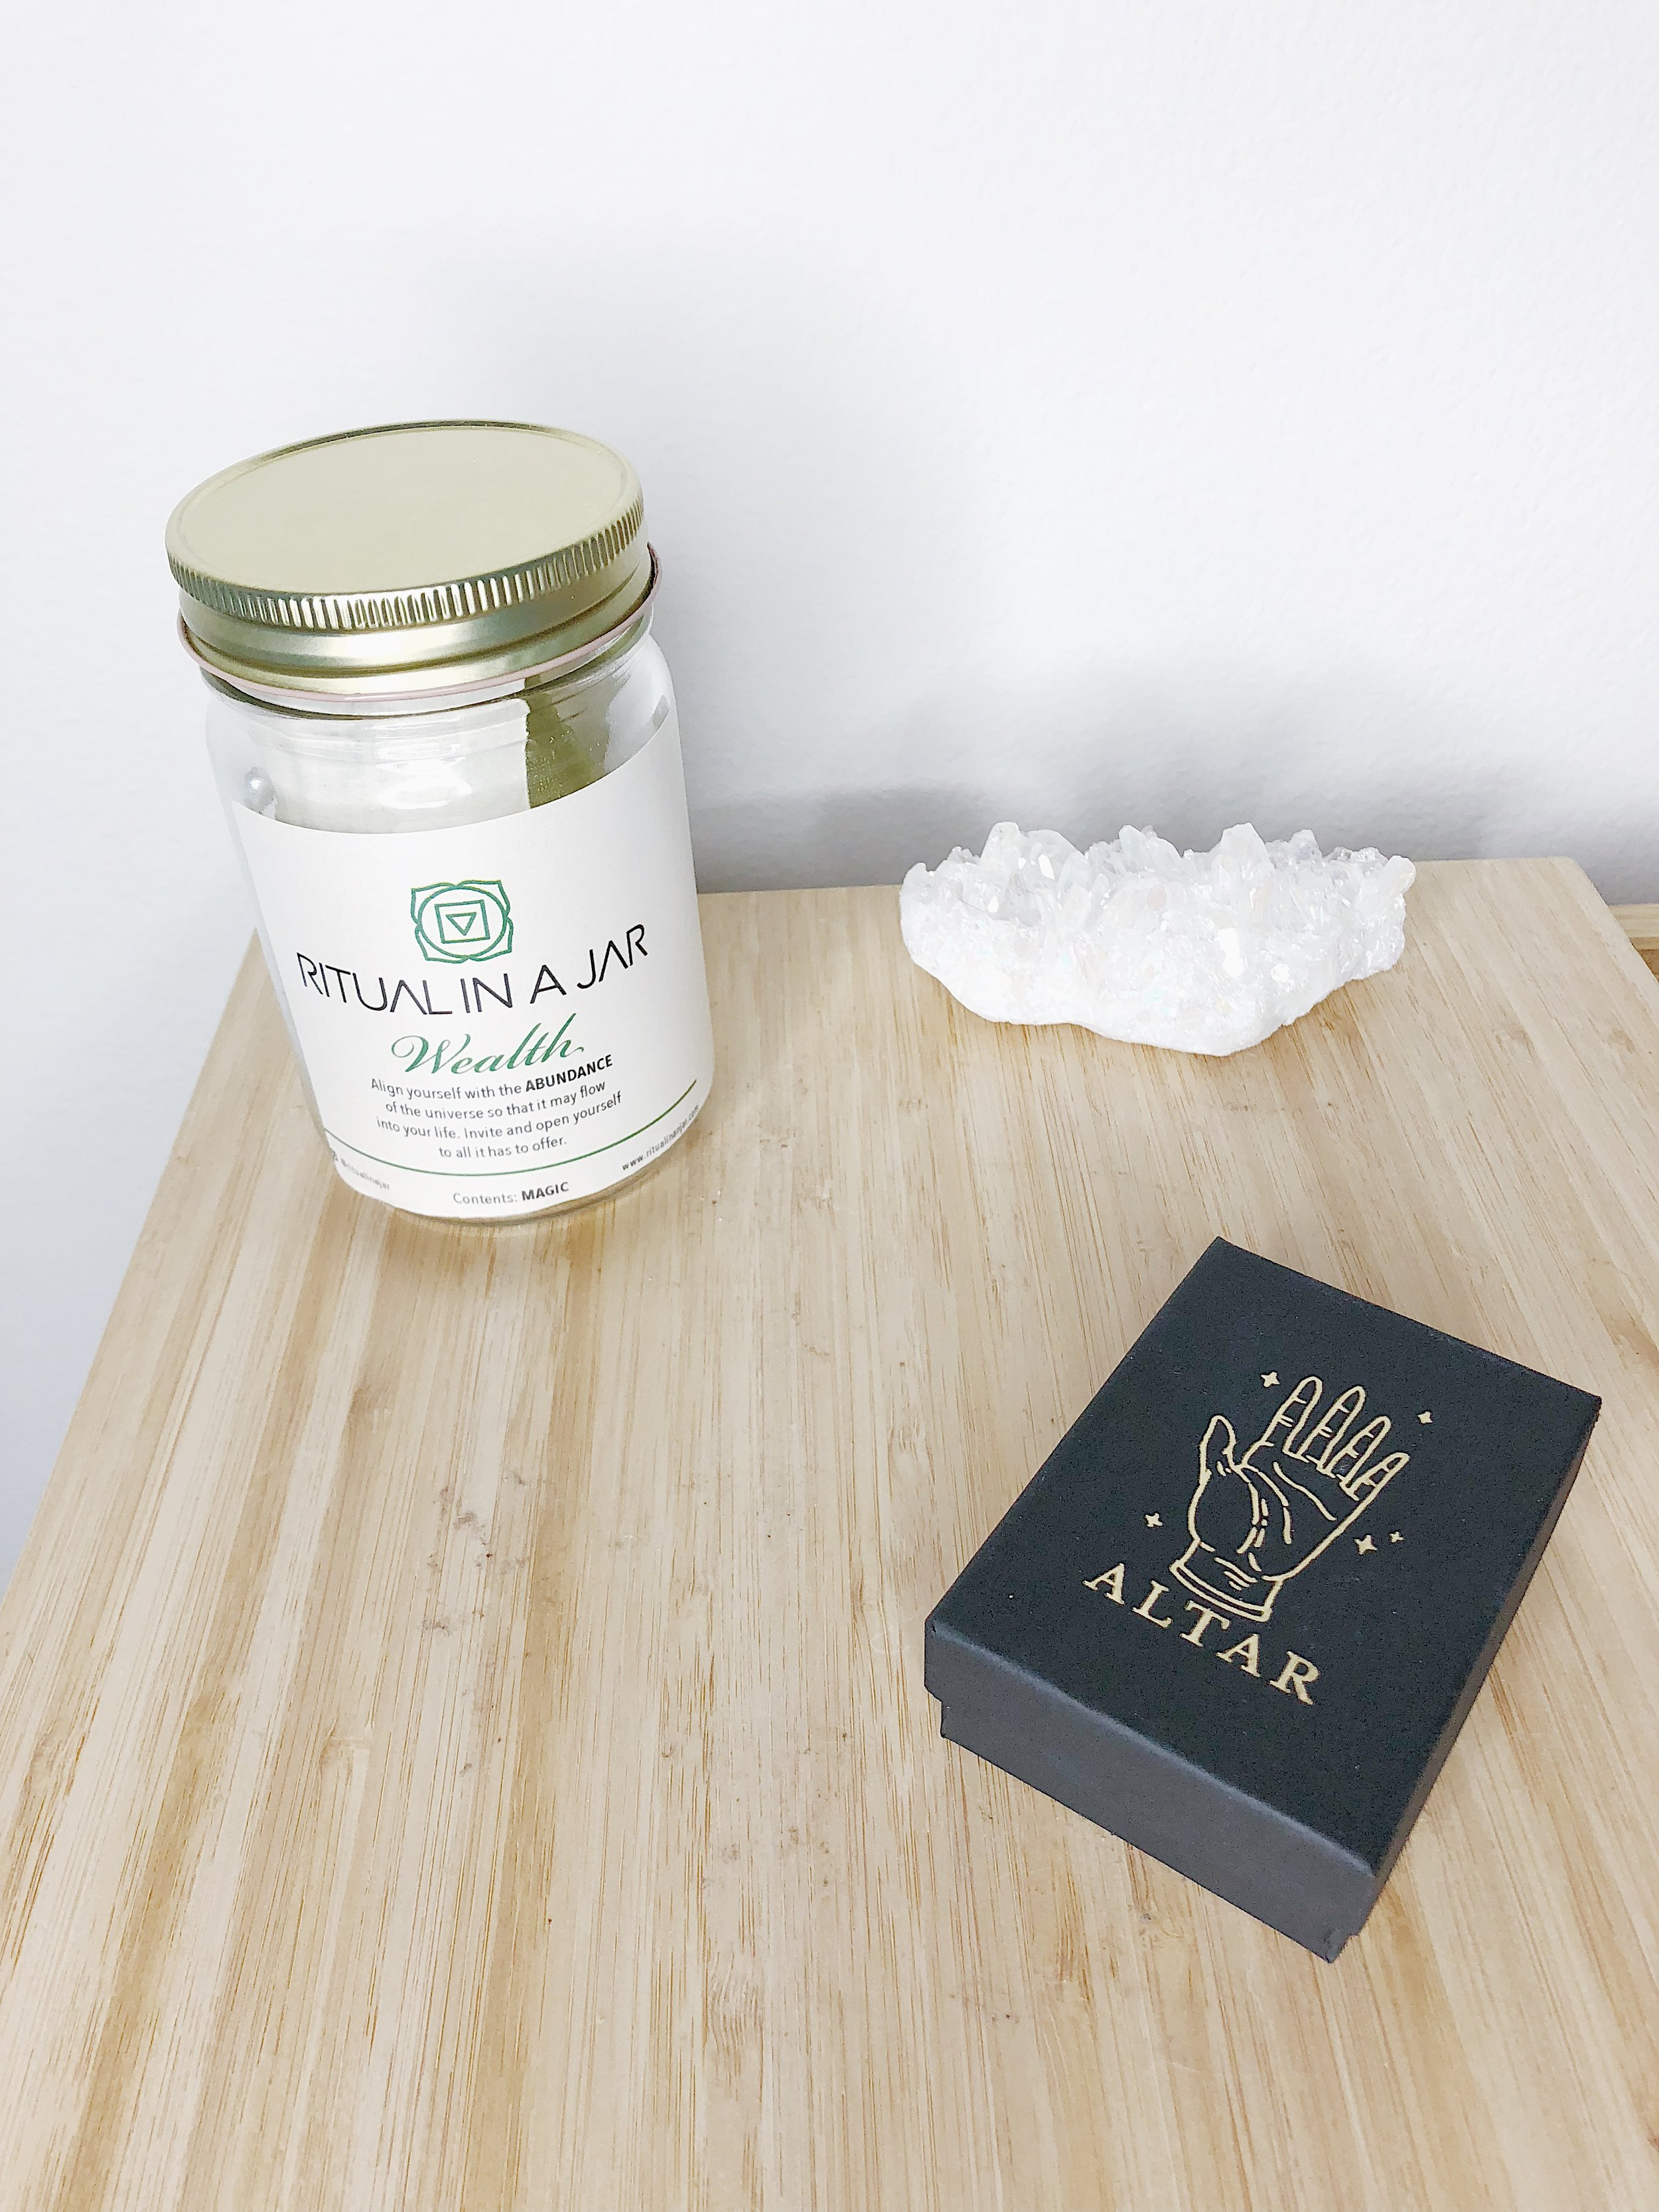 These ritual kits come in several different varieties, handmade in Portland and available online at  Ritual in a Jar .